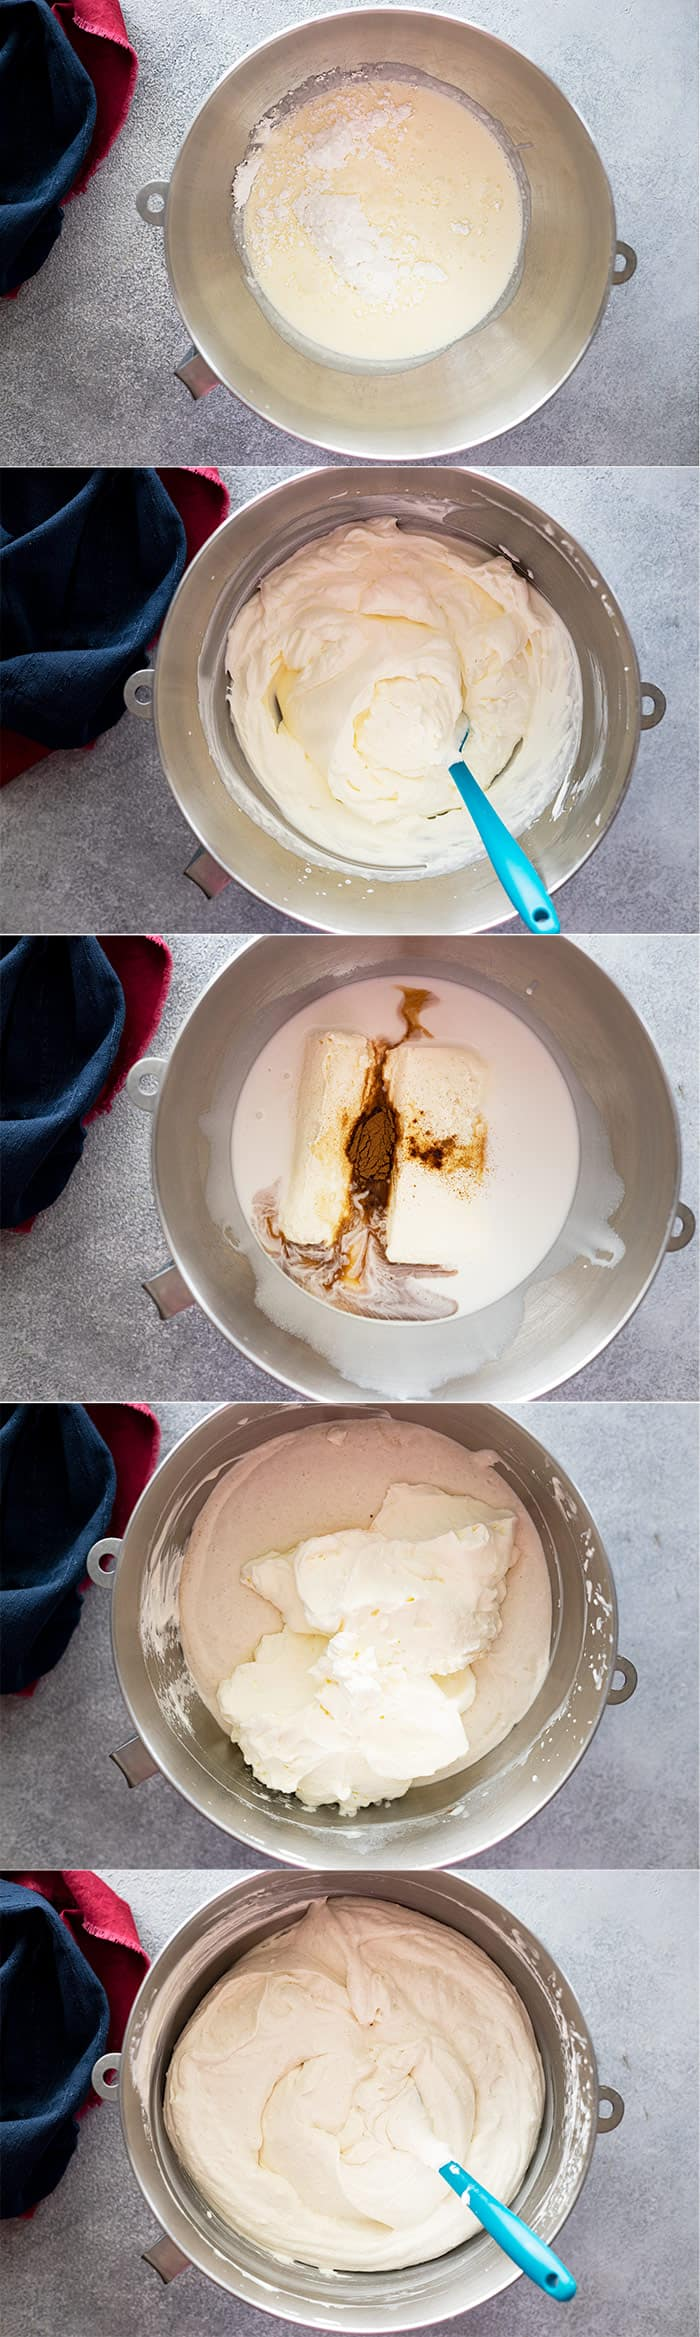 Pictures showing how to make the coconut cheesecake filling.